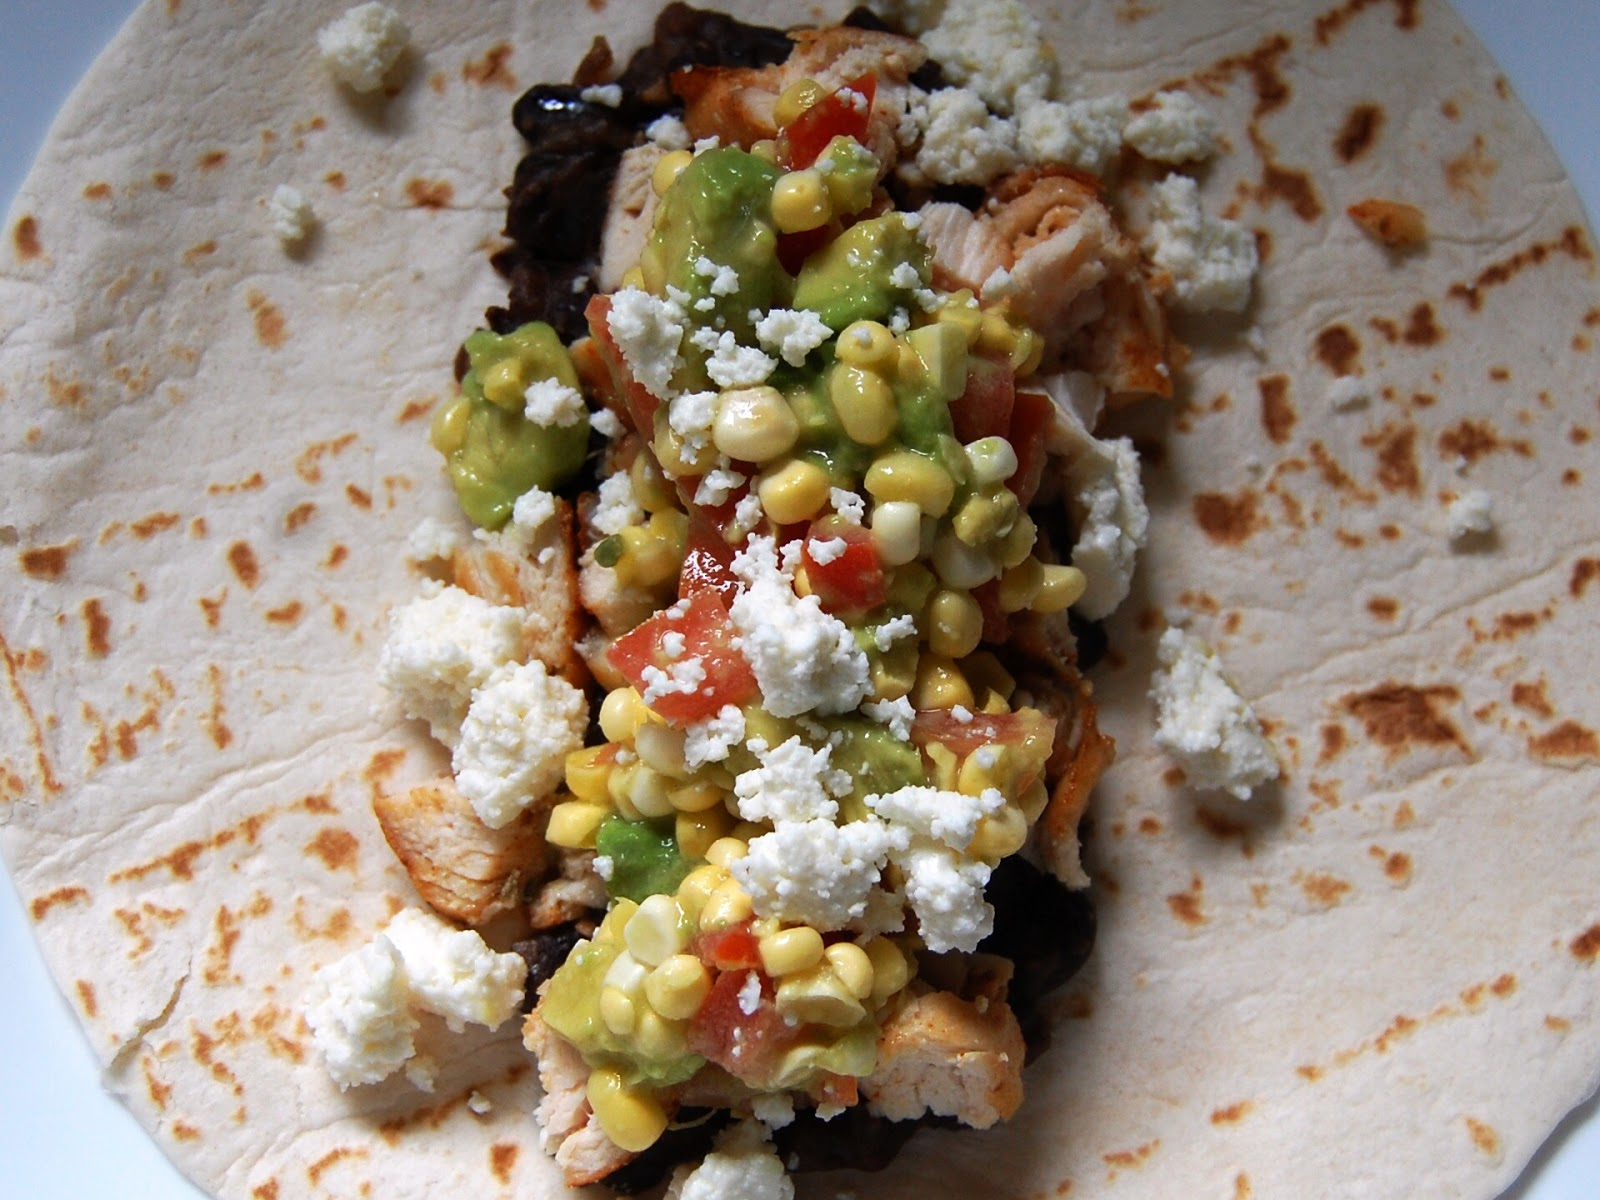 ... : Chicken Tacos with Mashed Black Beans and Avocado-Sweet Corn Relish